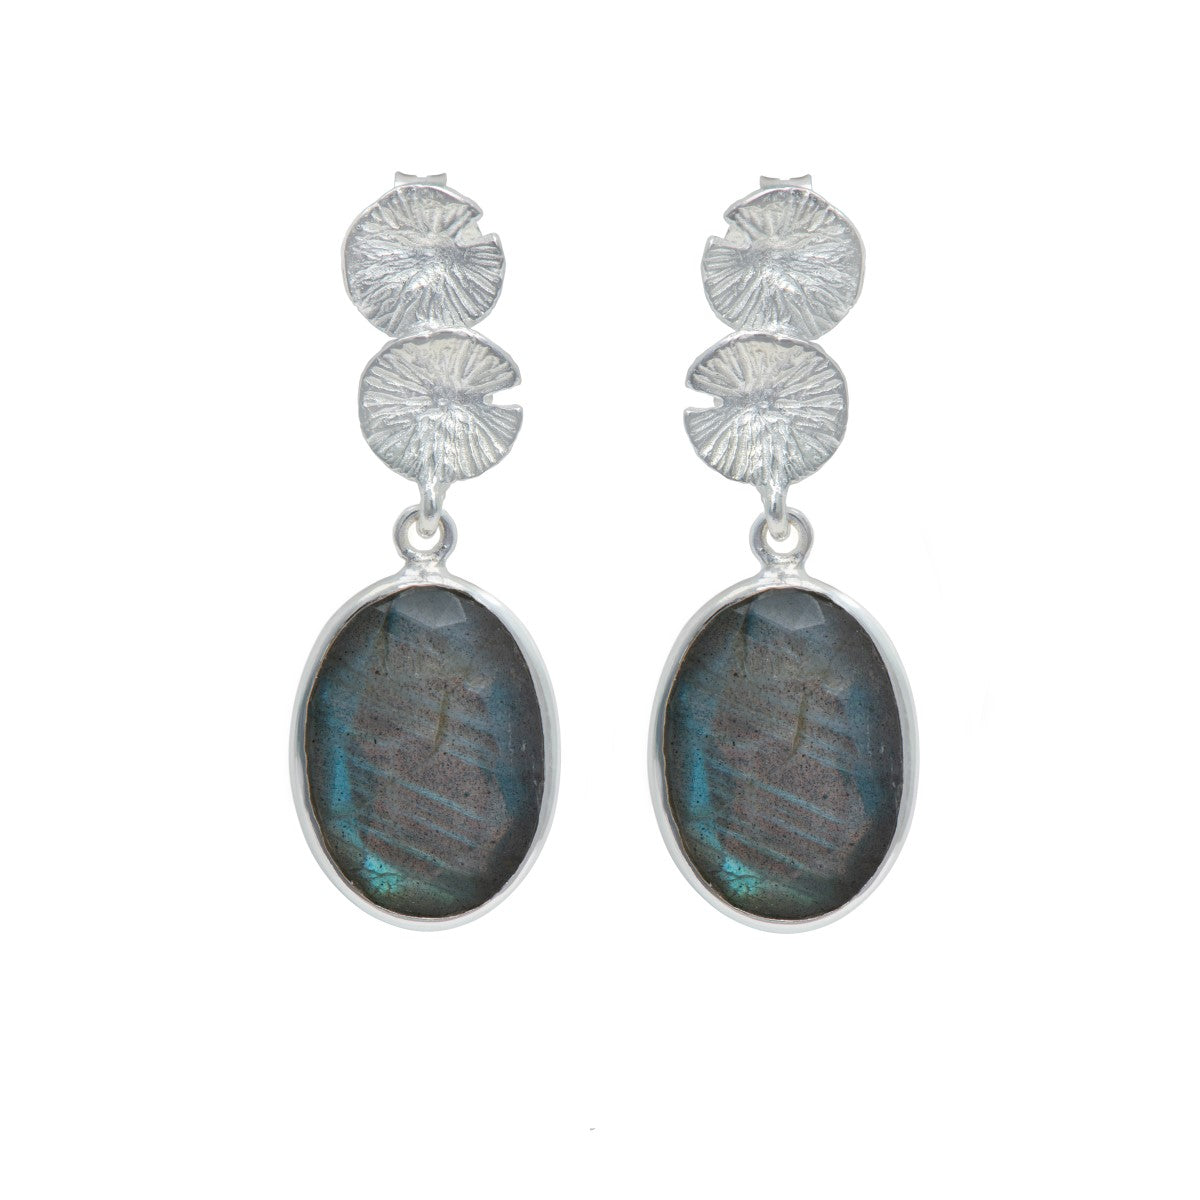 Lily Pad Earrings in Sterling Silver with a Labradorite Gemstone Drop